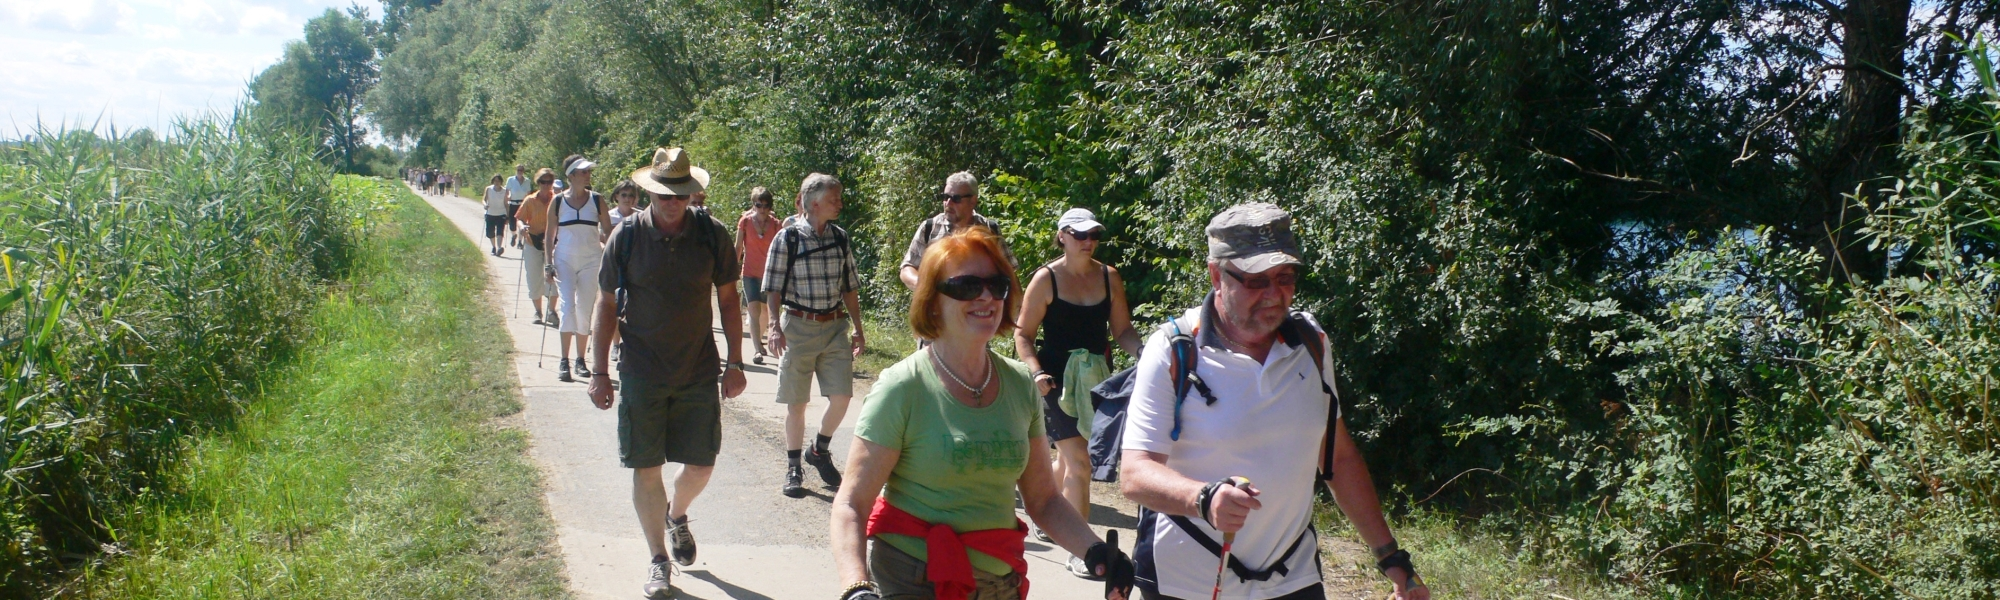 Nordic Walking in den Wiesen